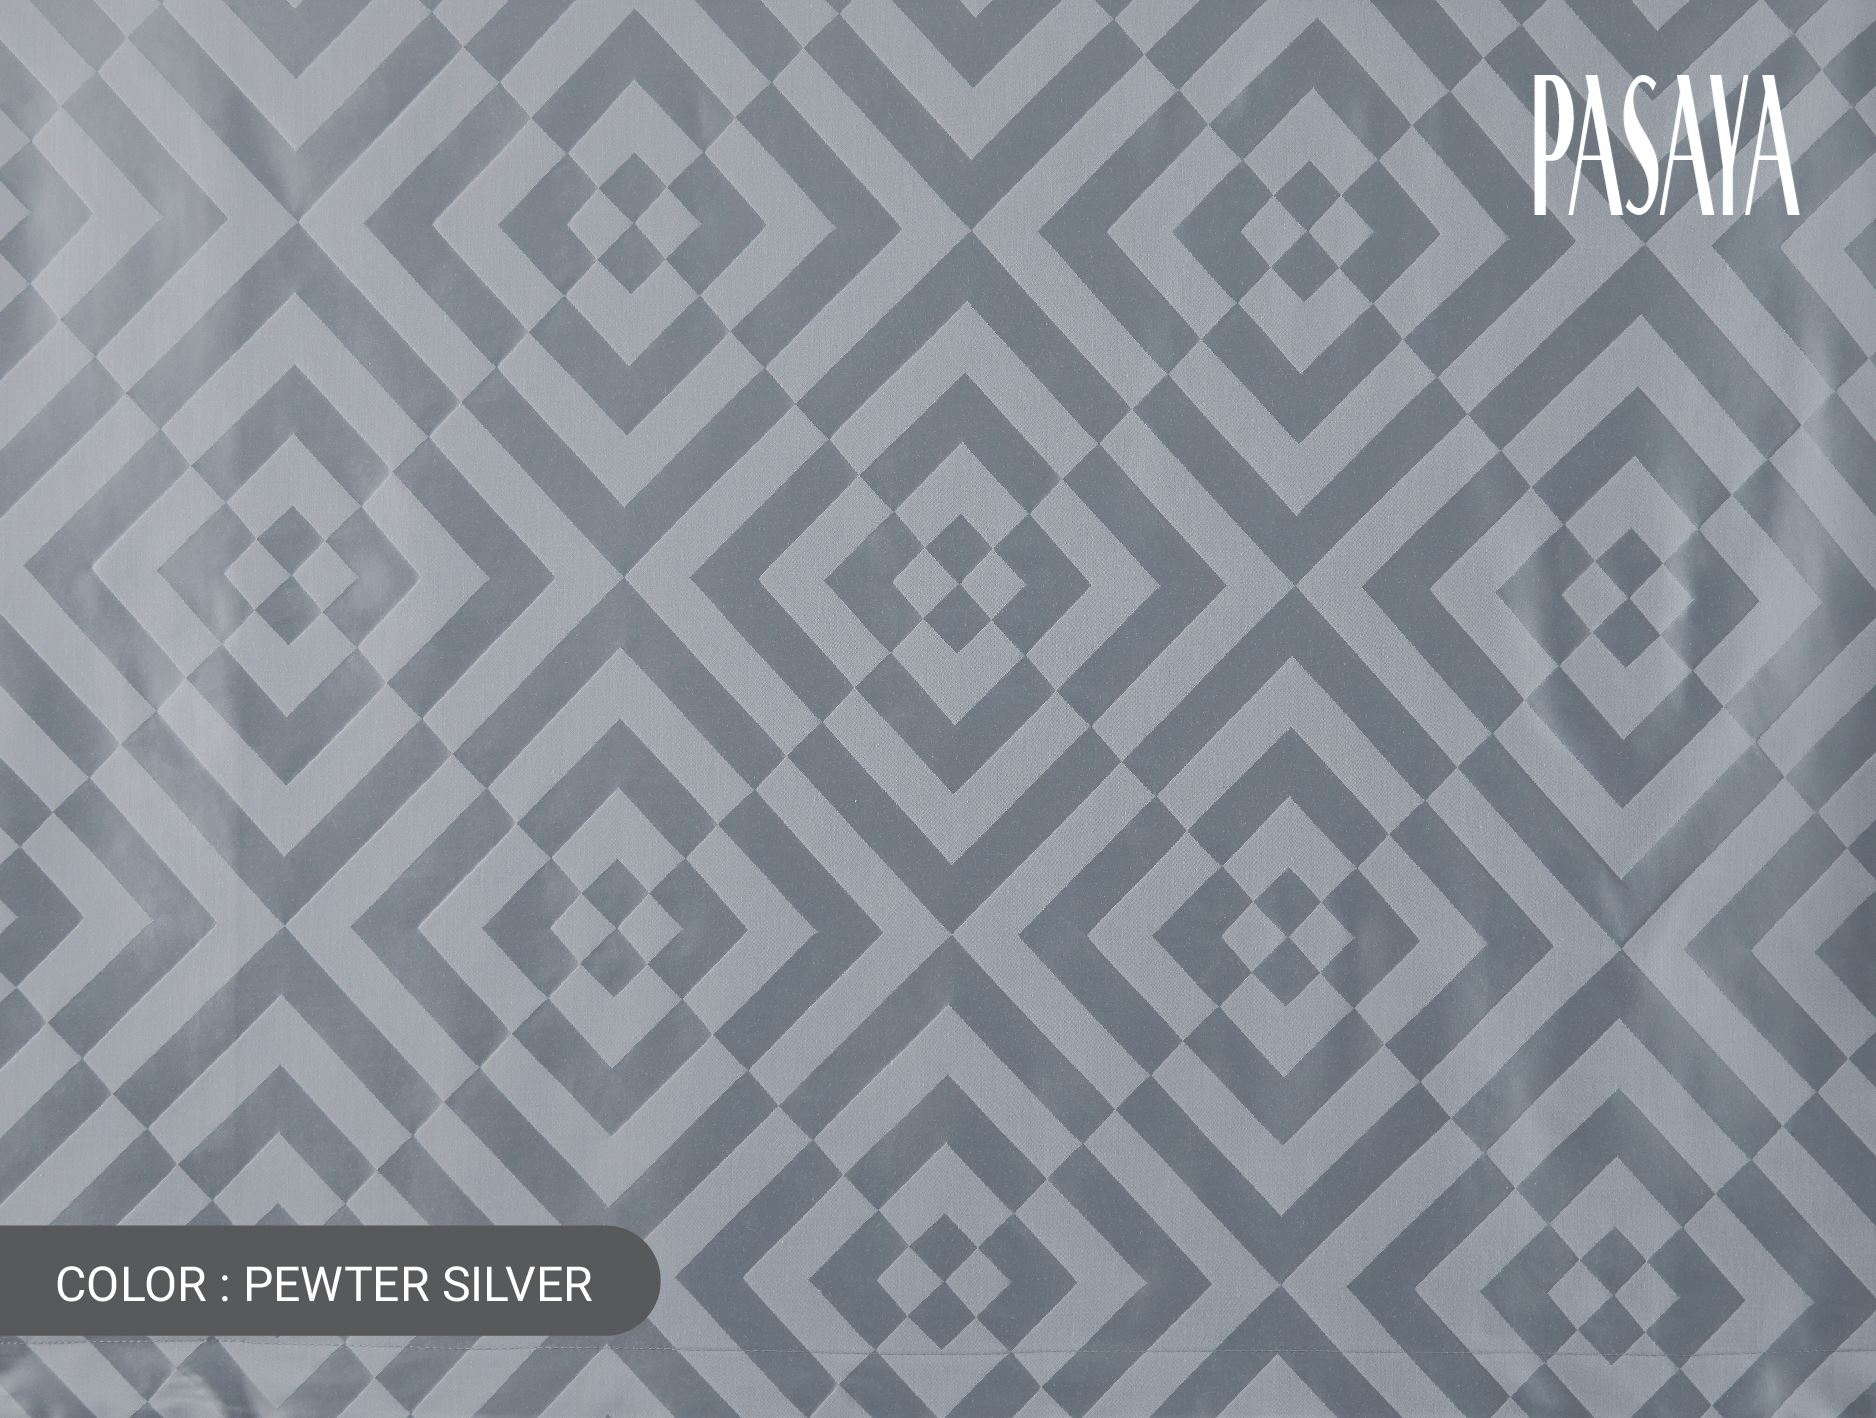 PEWTER SILVER